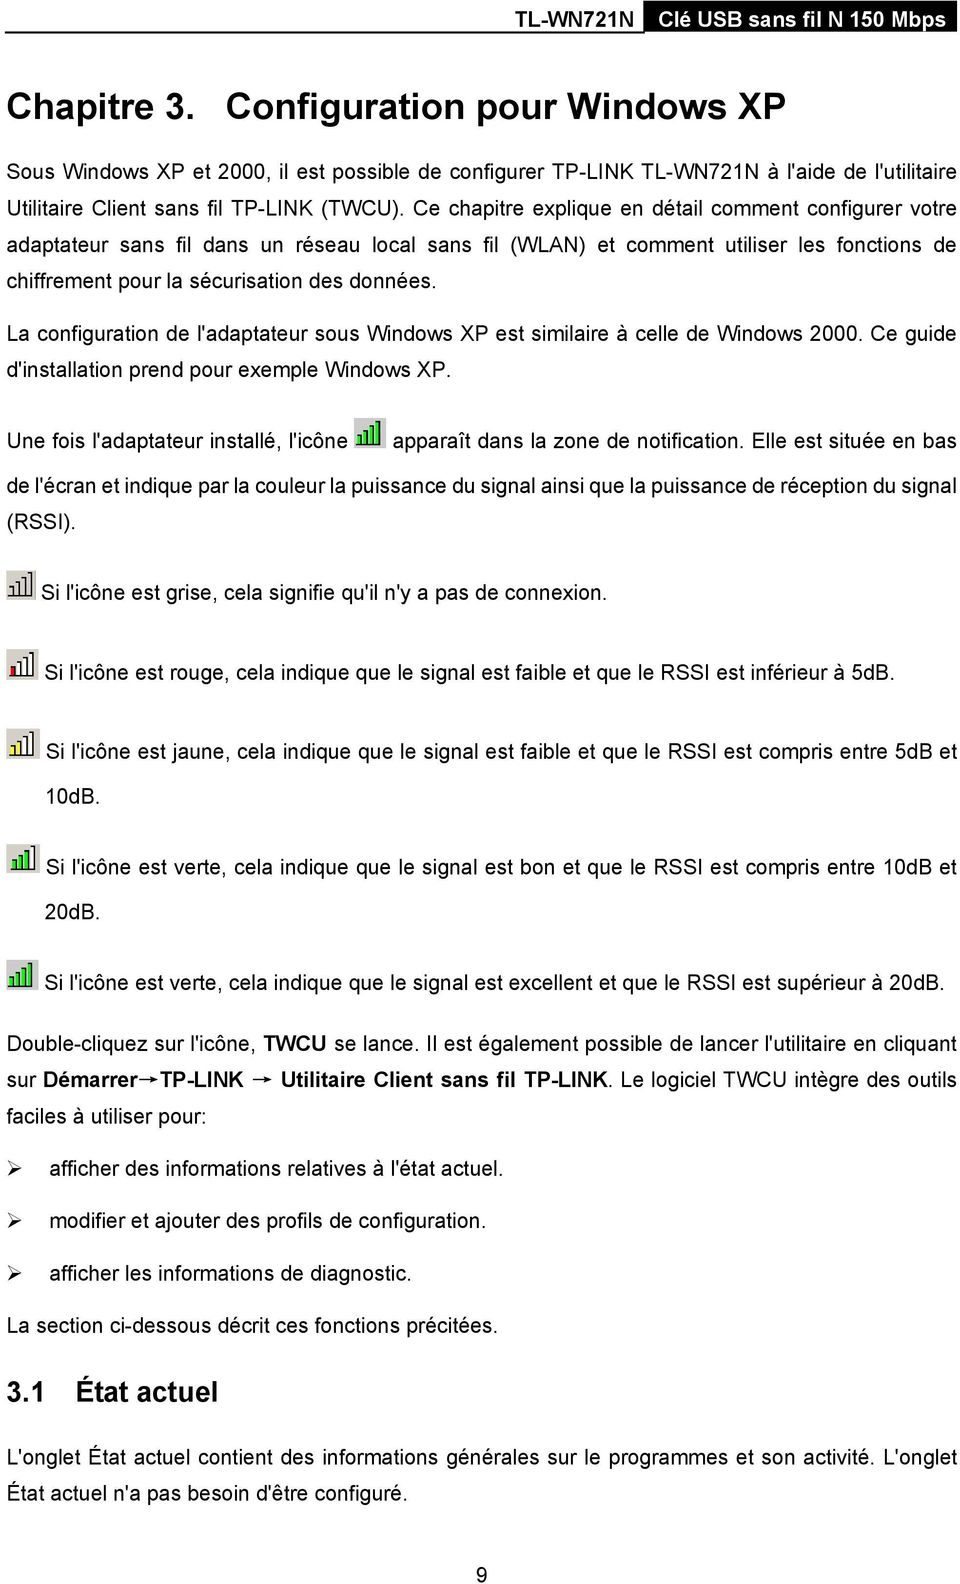 La configuration de l'adaptateur sous Windows XP est similaire à celle de Windows 2000. Ce guide d'installation prend pour exemple Windows XP.